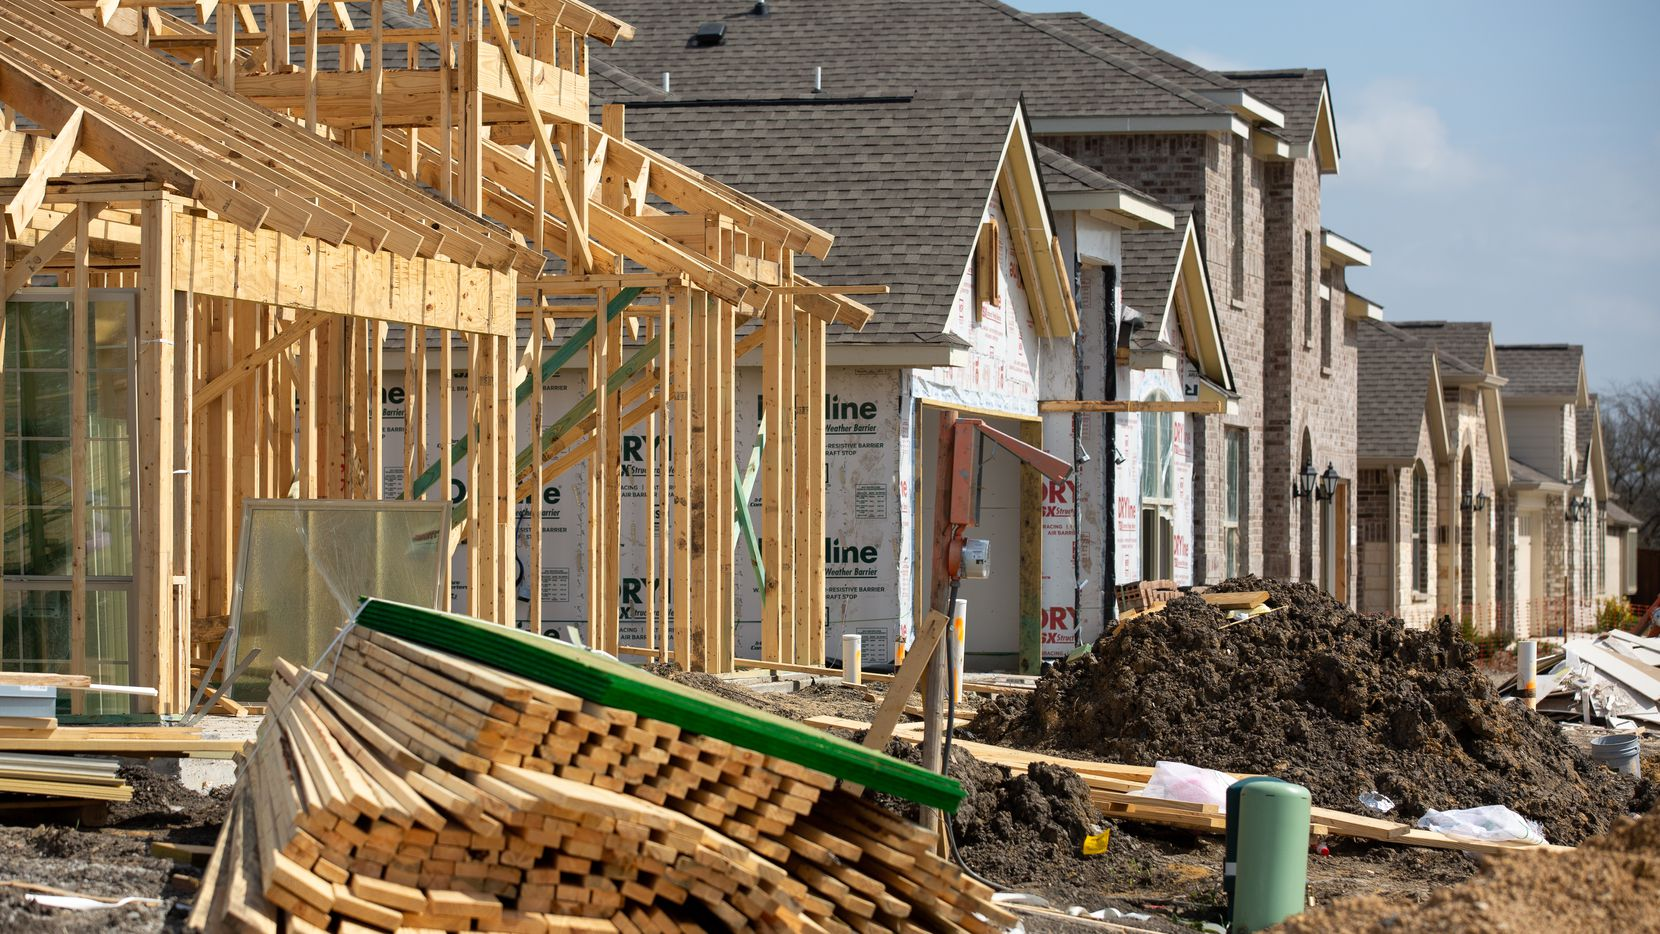 Forney is already one of the Dallas area's top homebuilding markets.